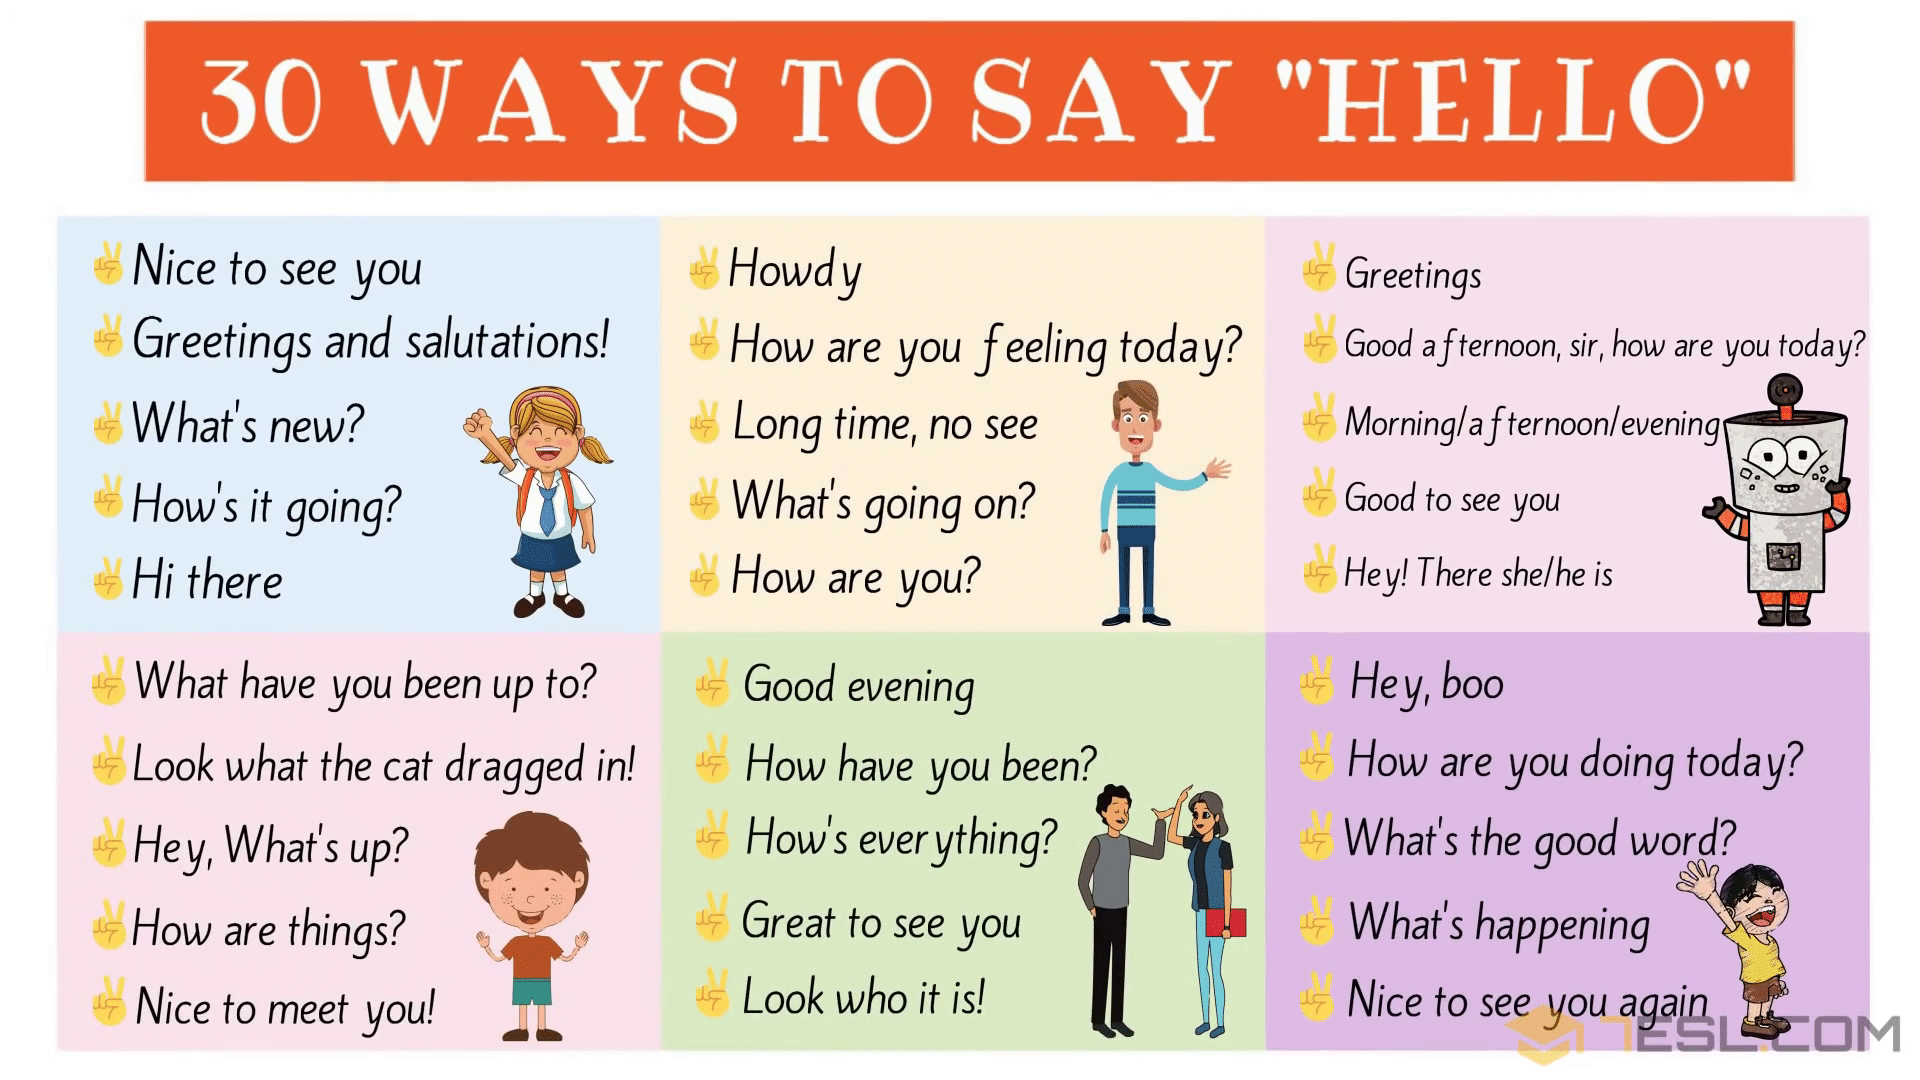 Greetings: 30 Ways to Say HELLO | Hello Synonyms 2